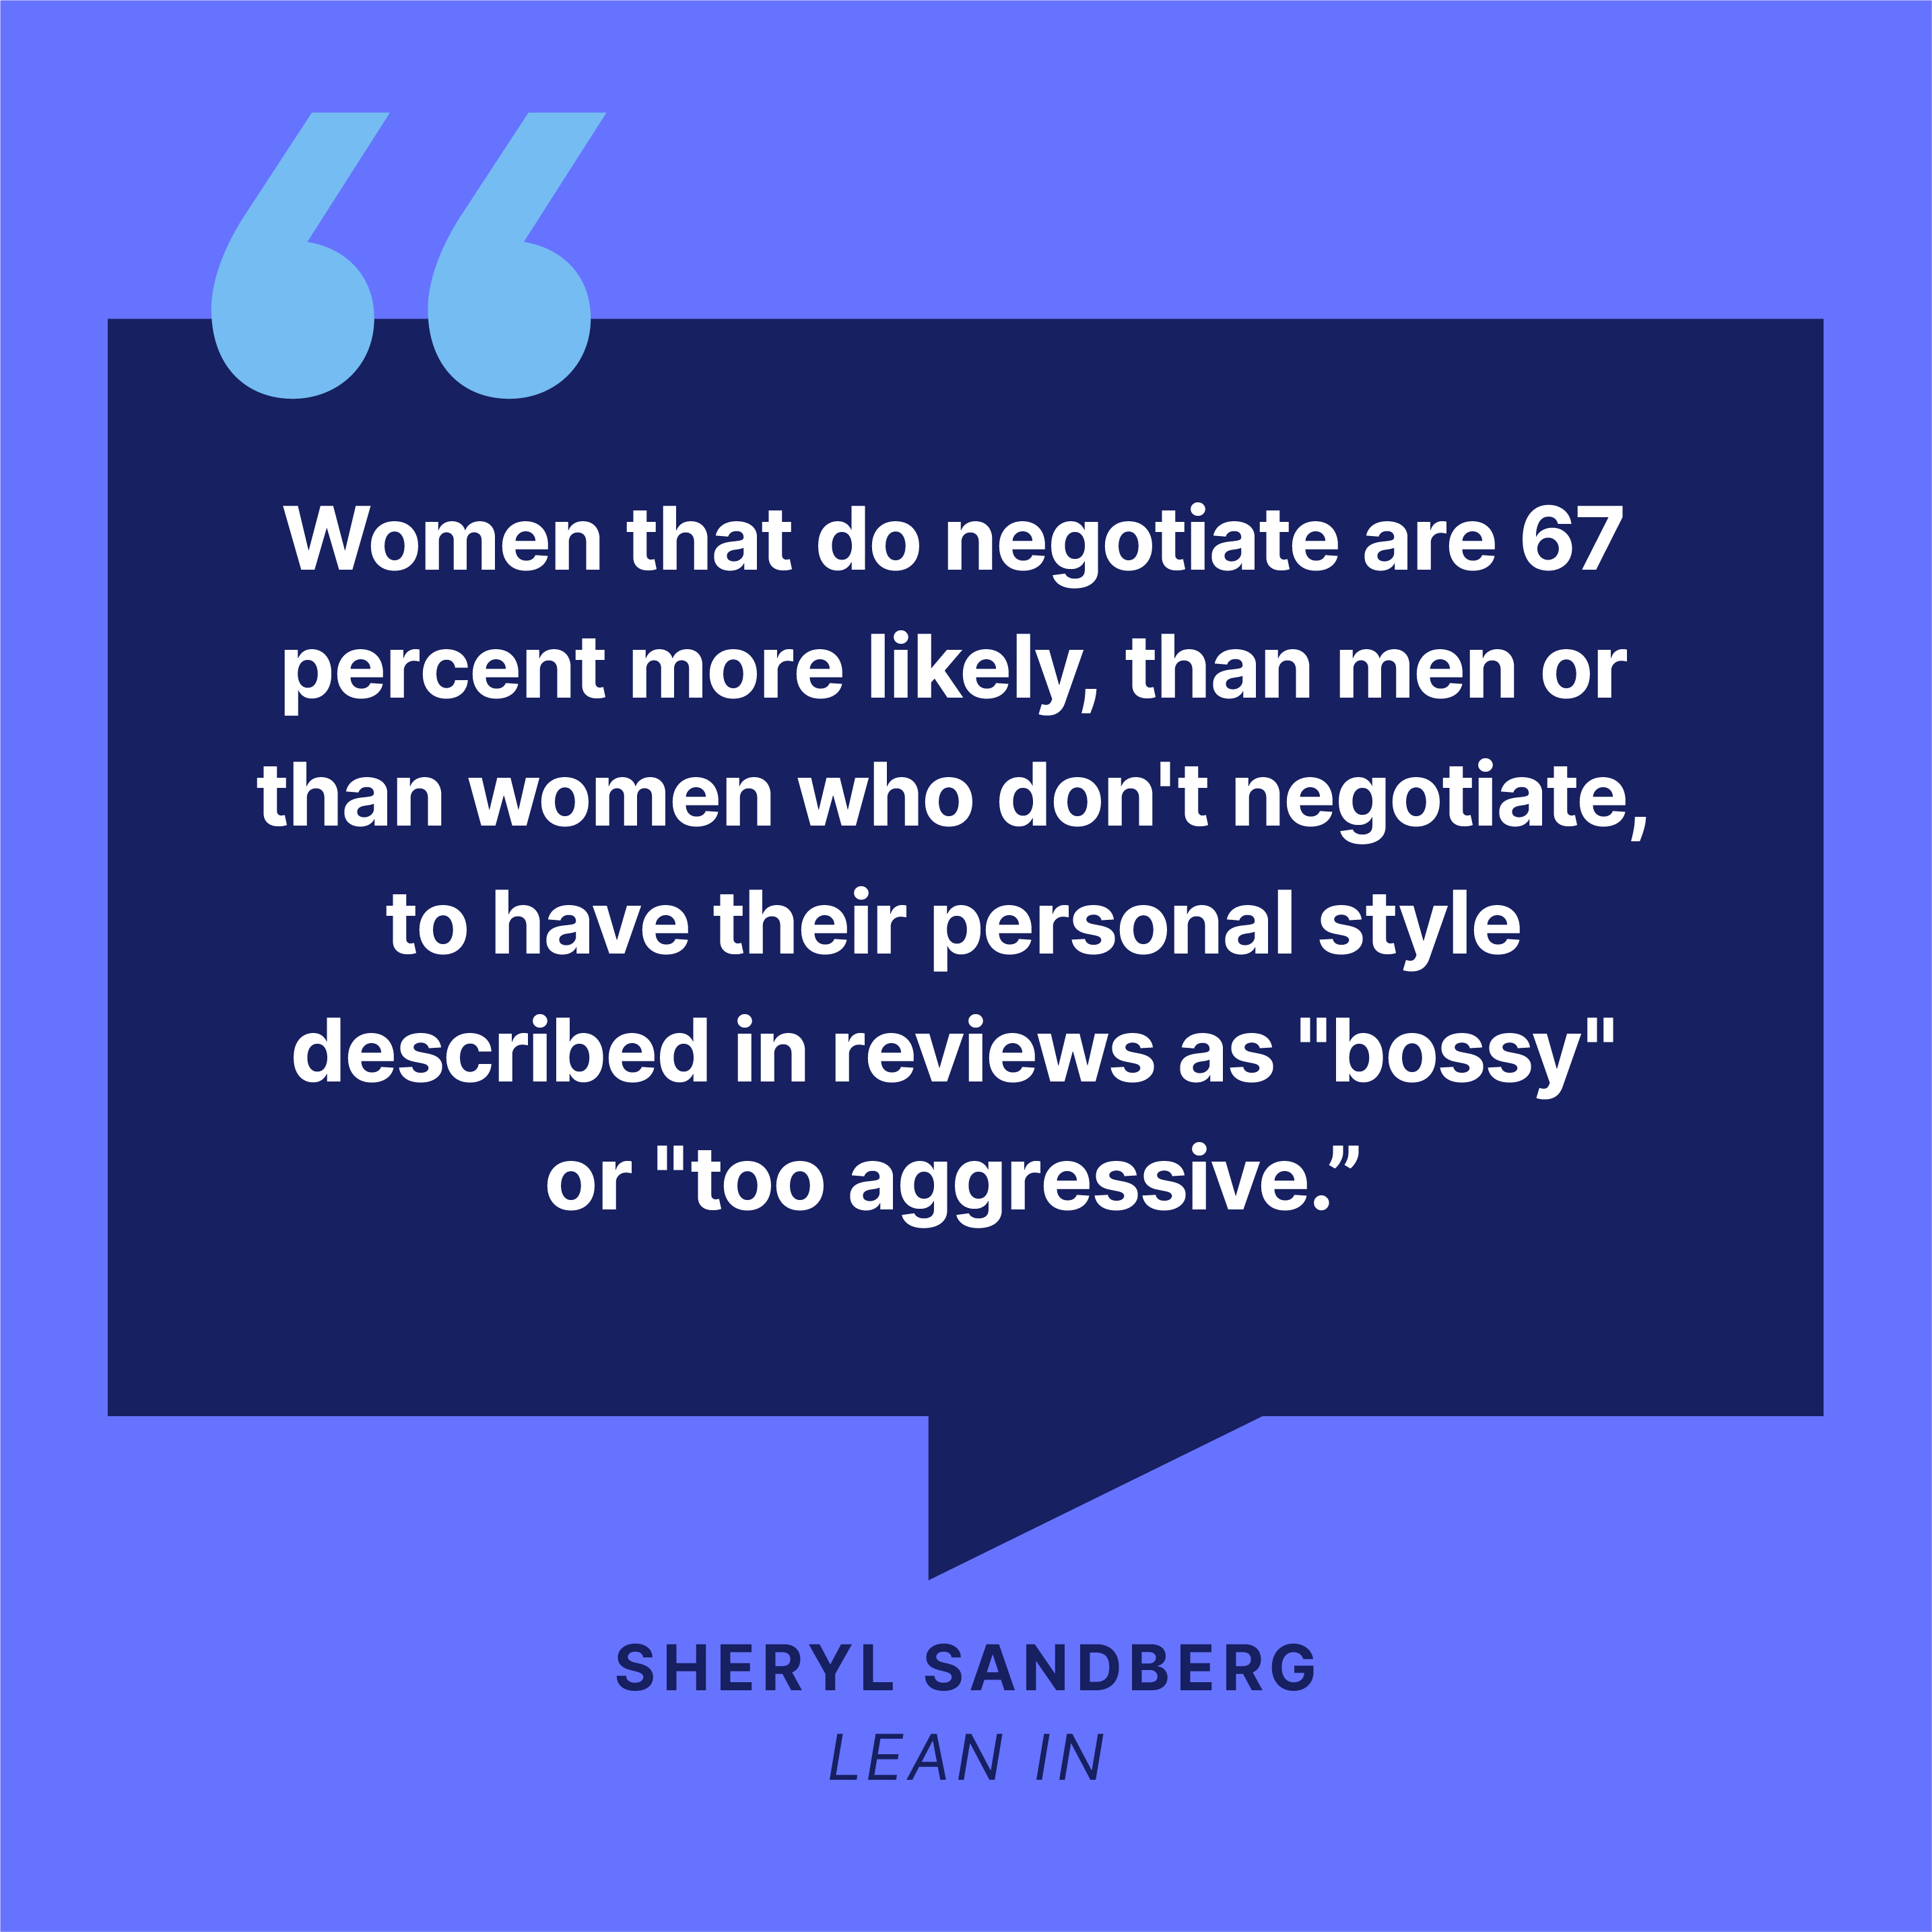 Women who do not negotiate are more likely to have their personal style described in reviews as bossy says Sheryl Sandberg